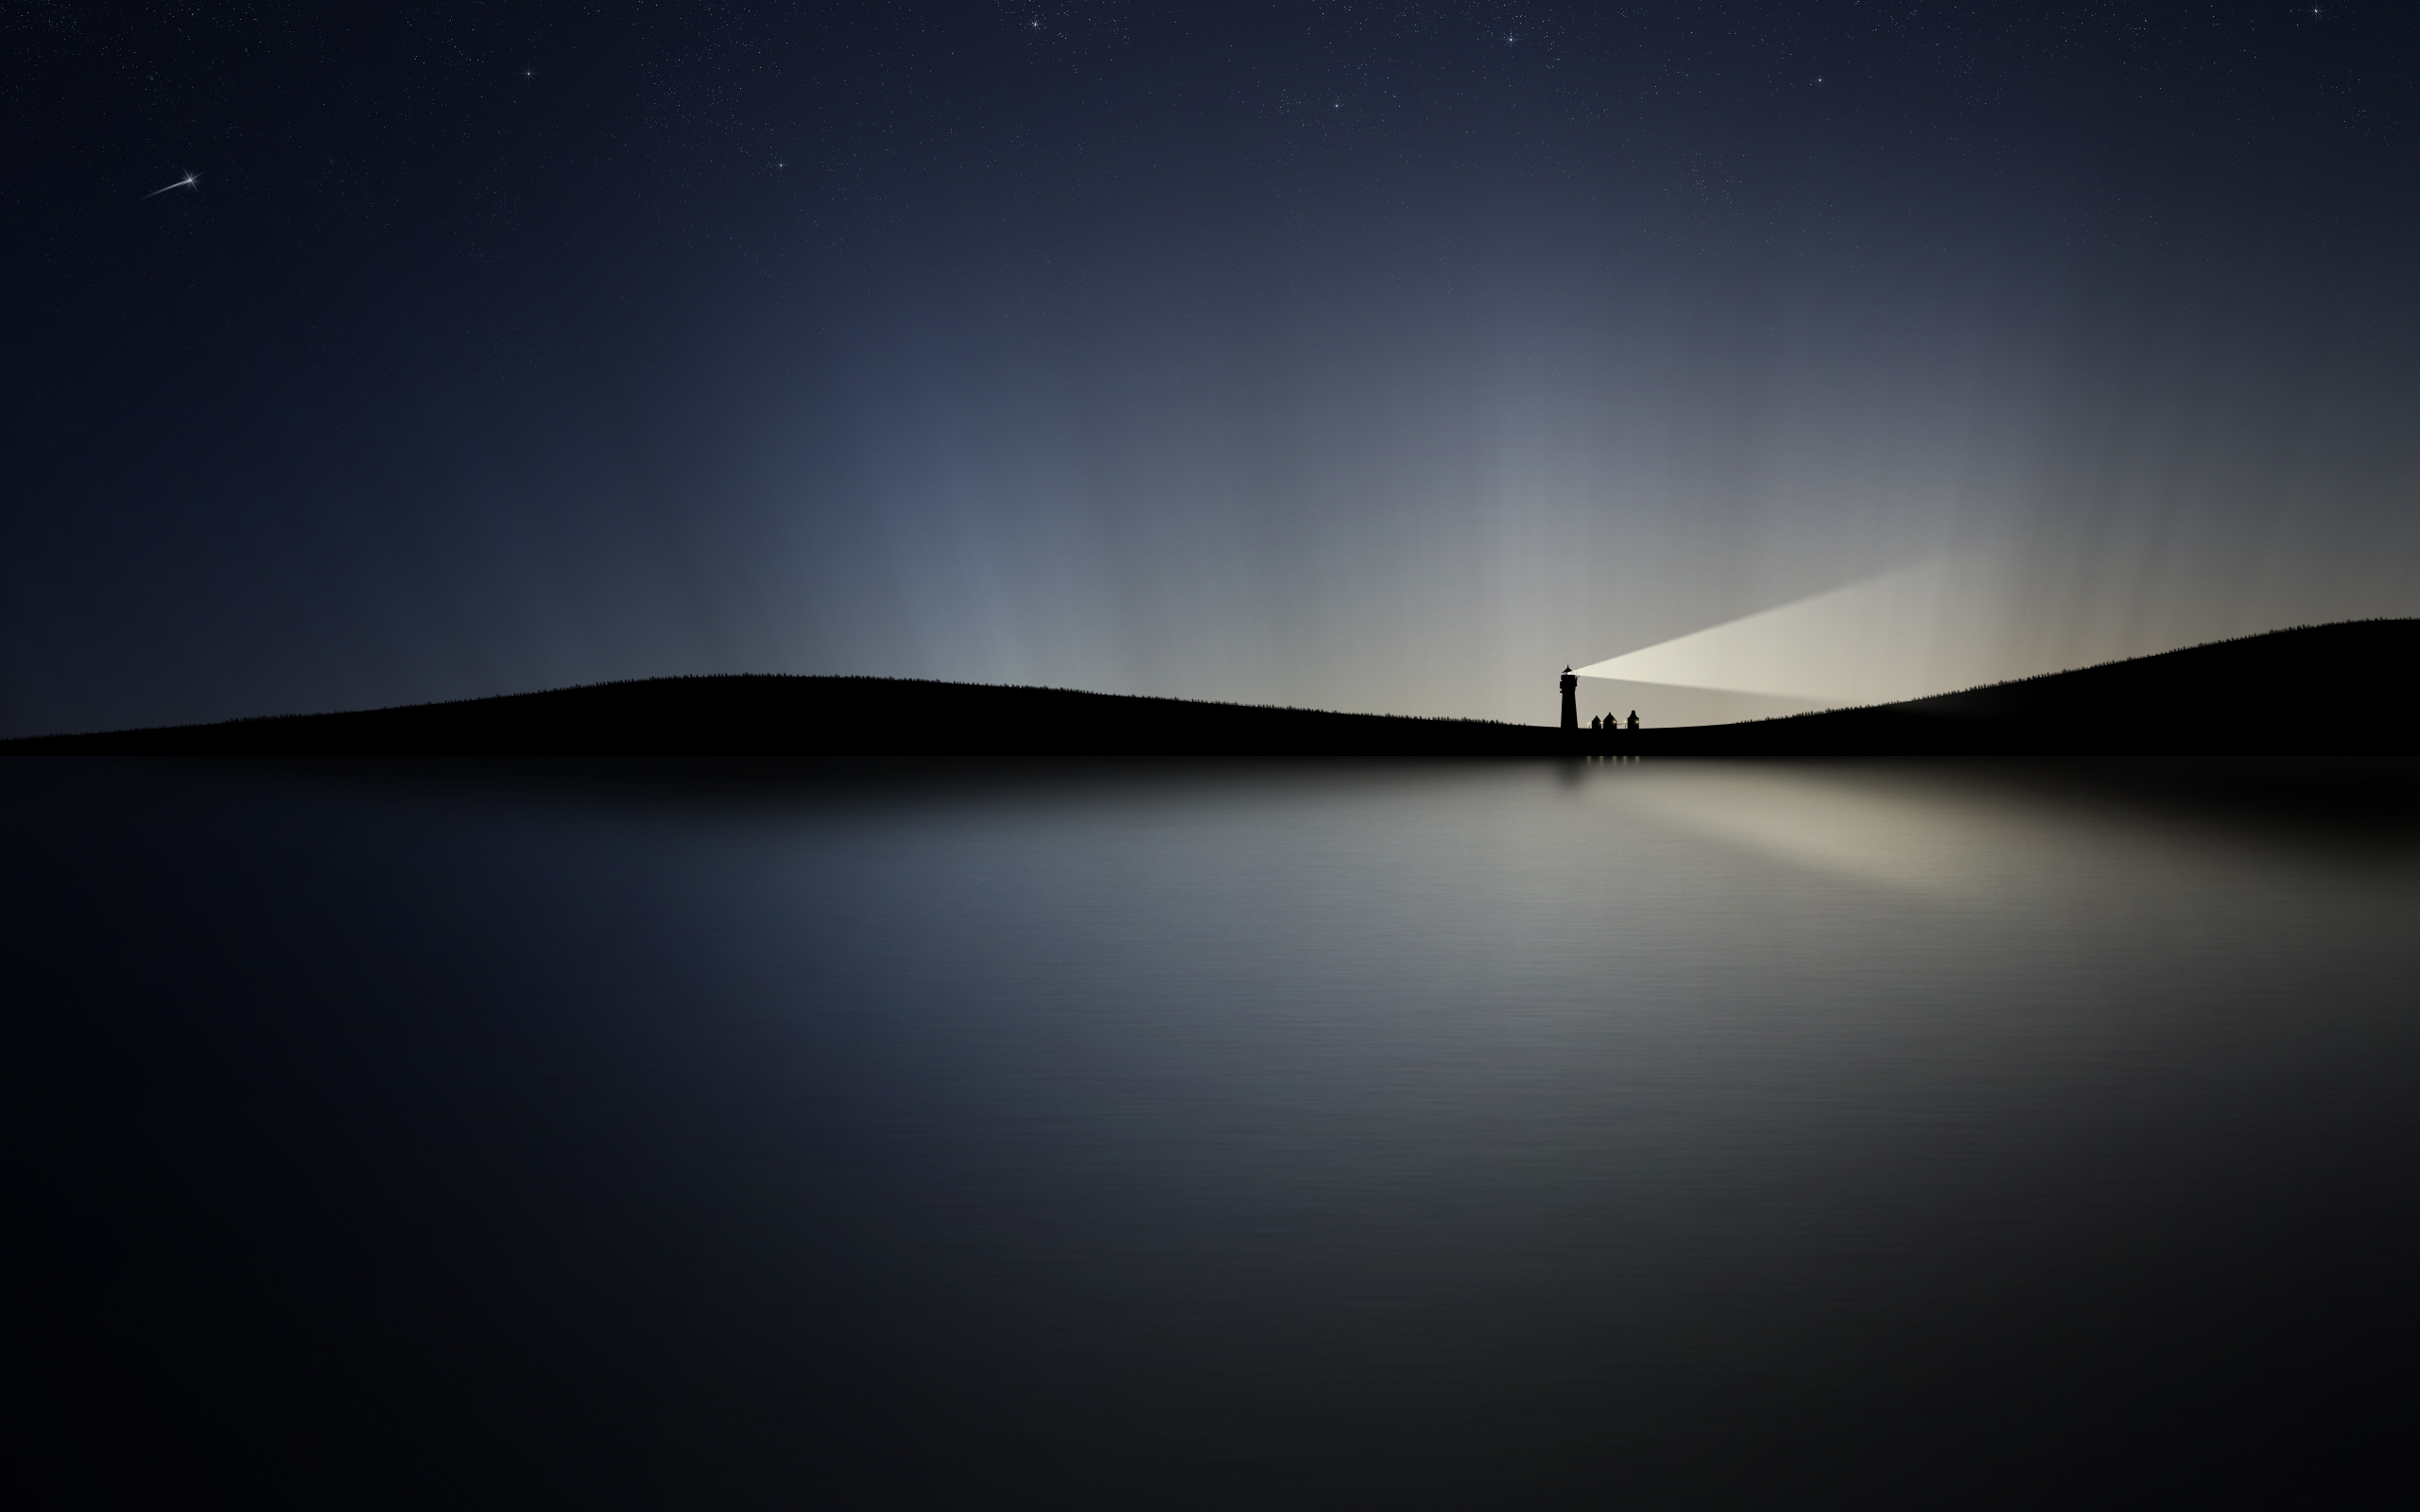 night sky wallpaper download